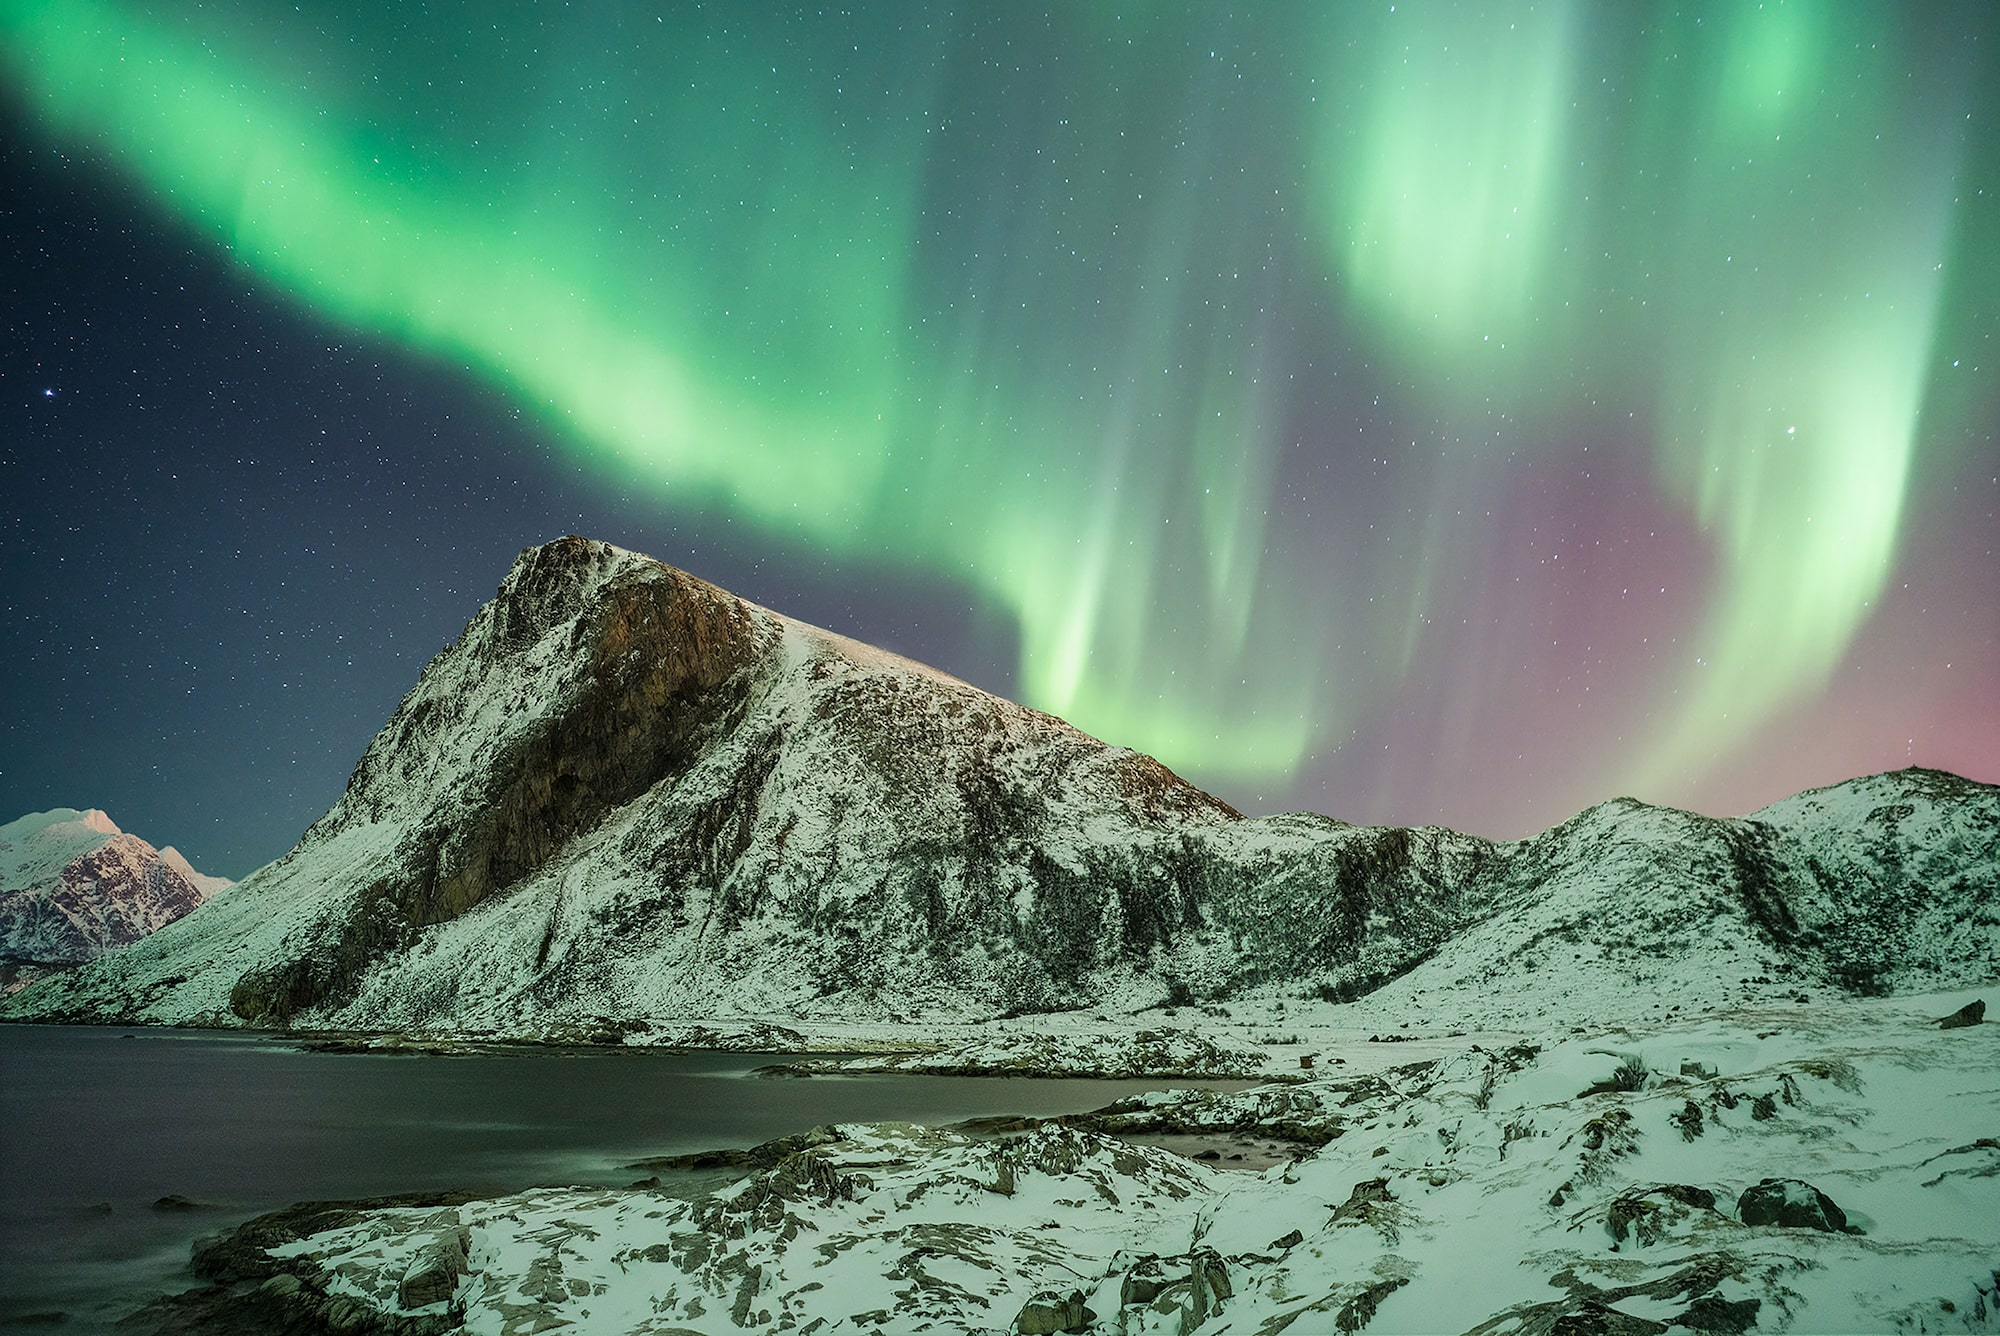 michael schaake sony alpha 7RIII the aurora borealis dancing in the sky behind snowy mountains